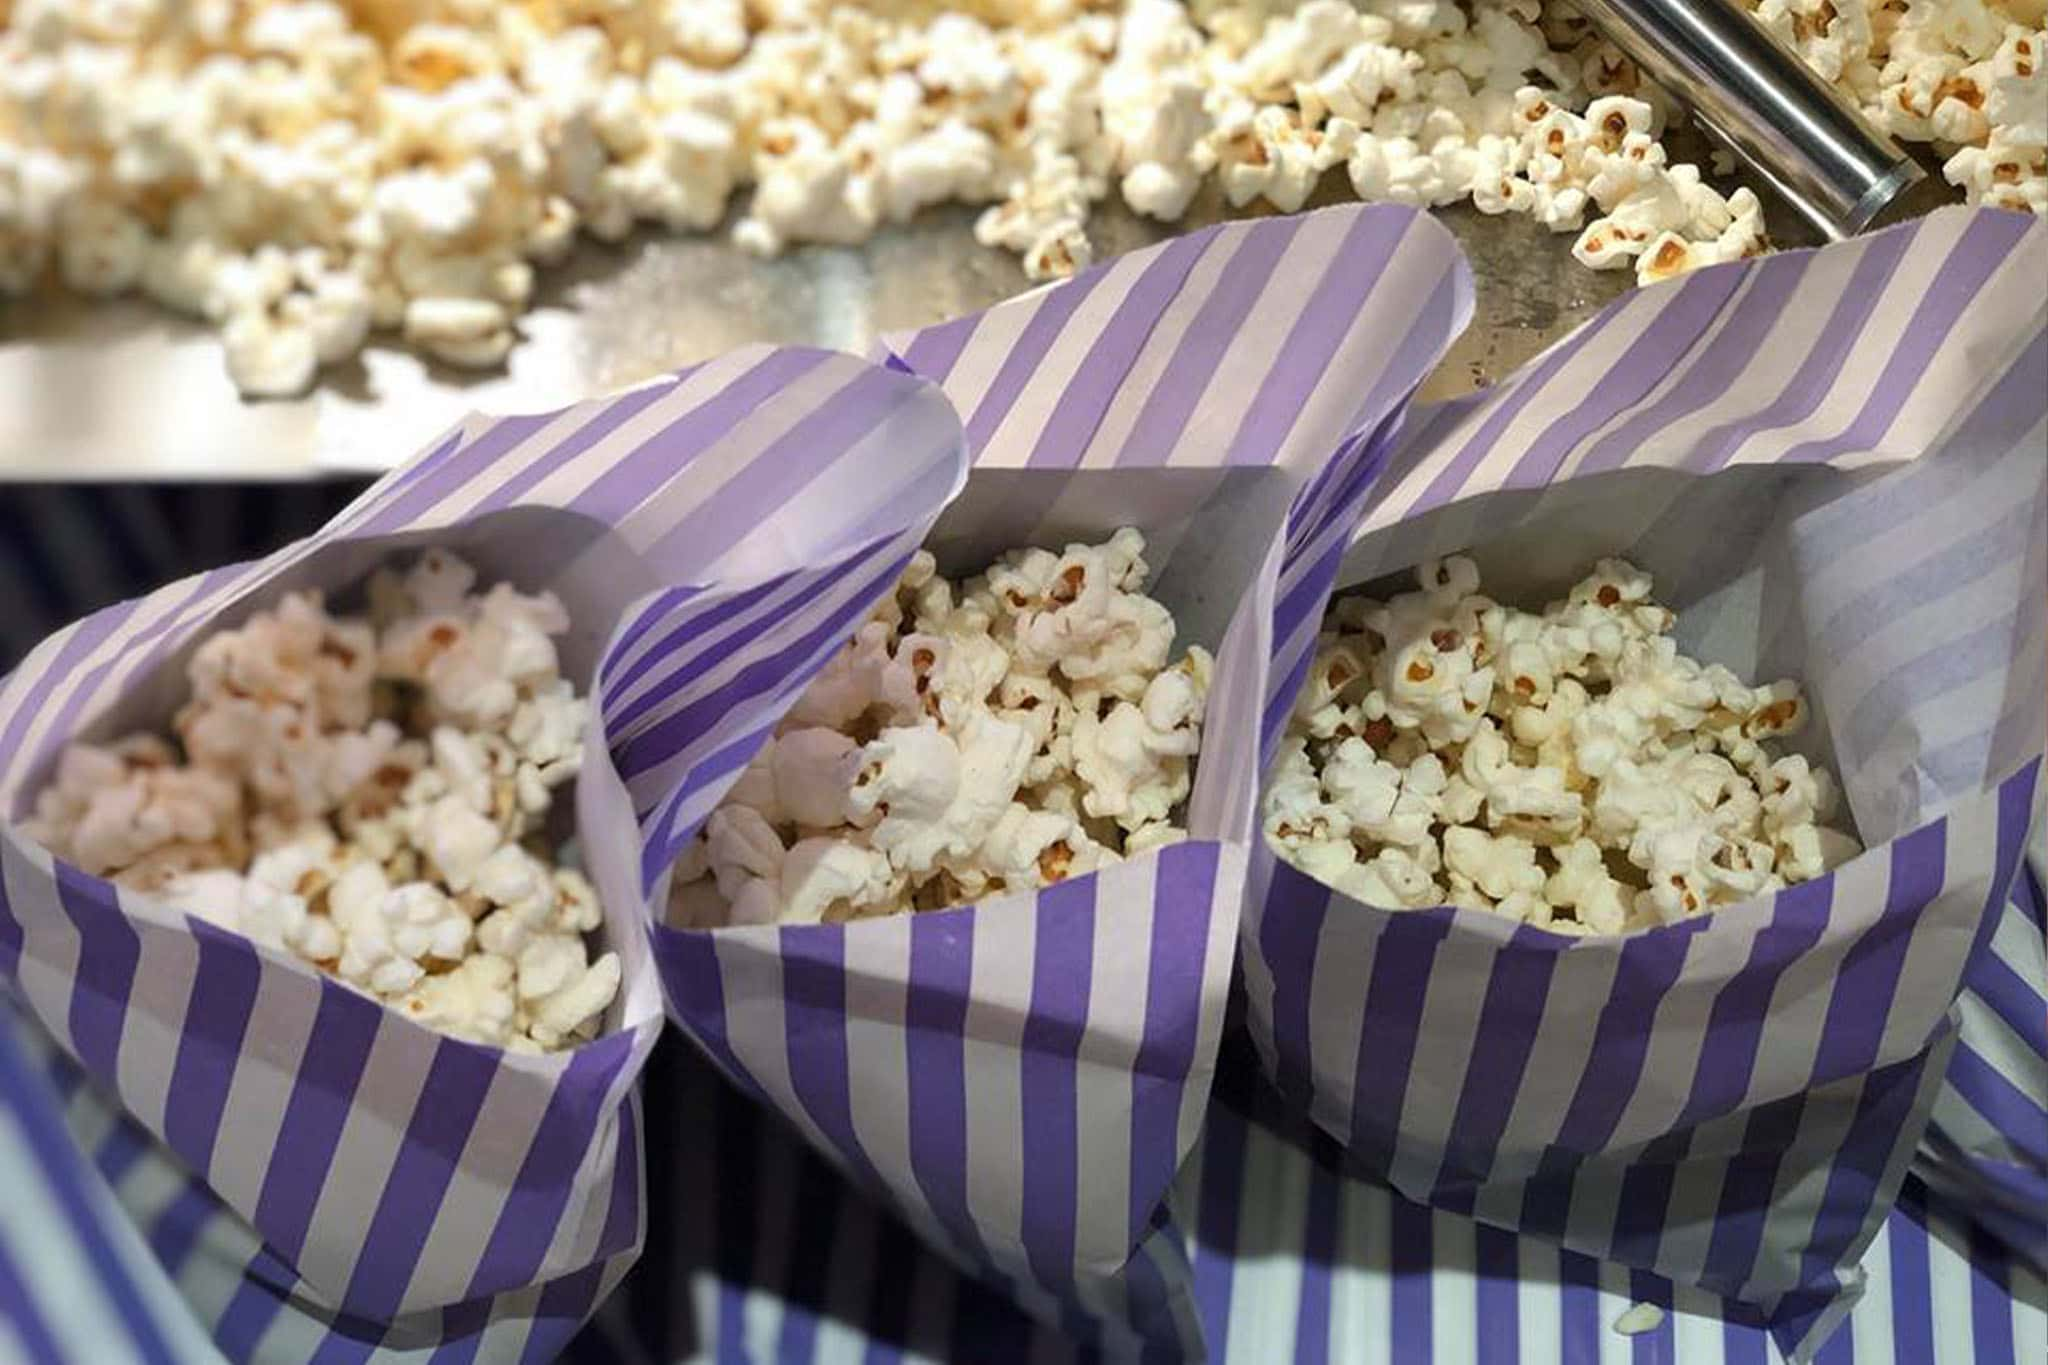 Popcorn Machine Hire Gloucestershire, Popcorn Machine Hire Cheltenham, Popcorn Machine Hire Gloucester,Popcorn Machine Hire Midlands, Popcorn Machine Hire South West.